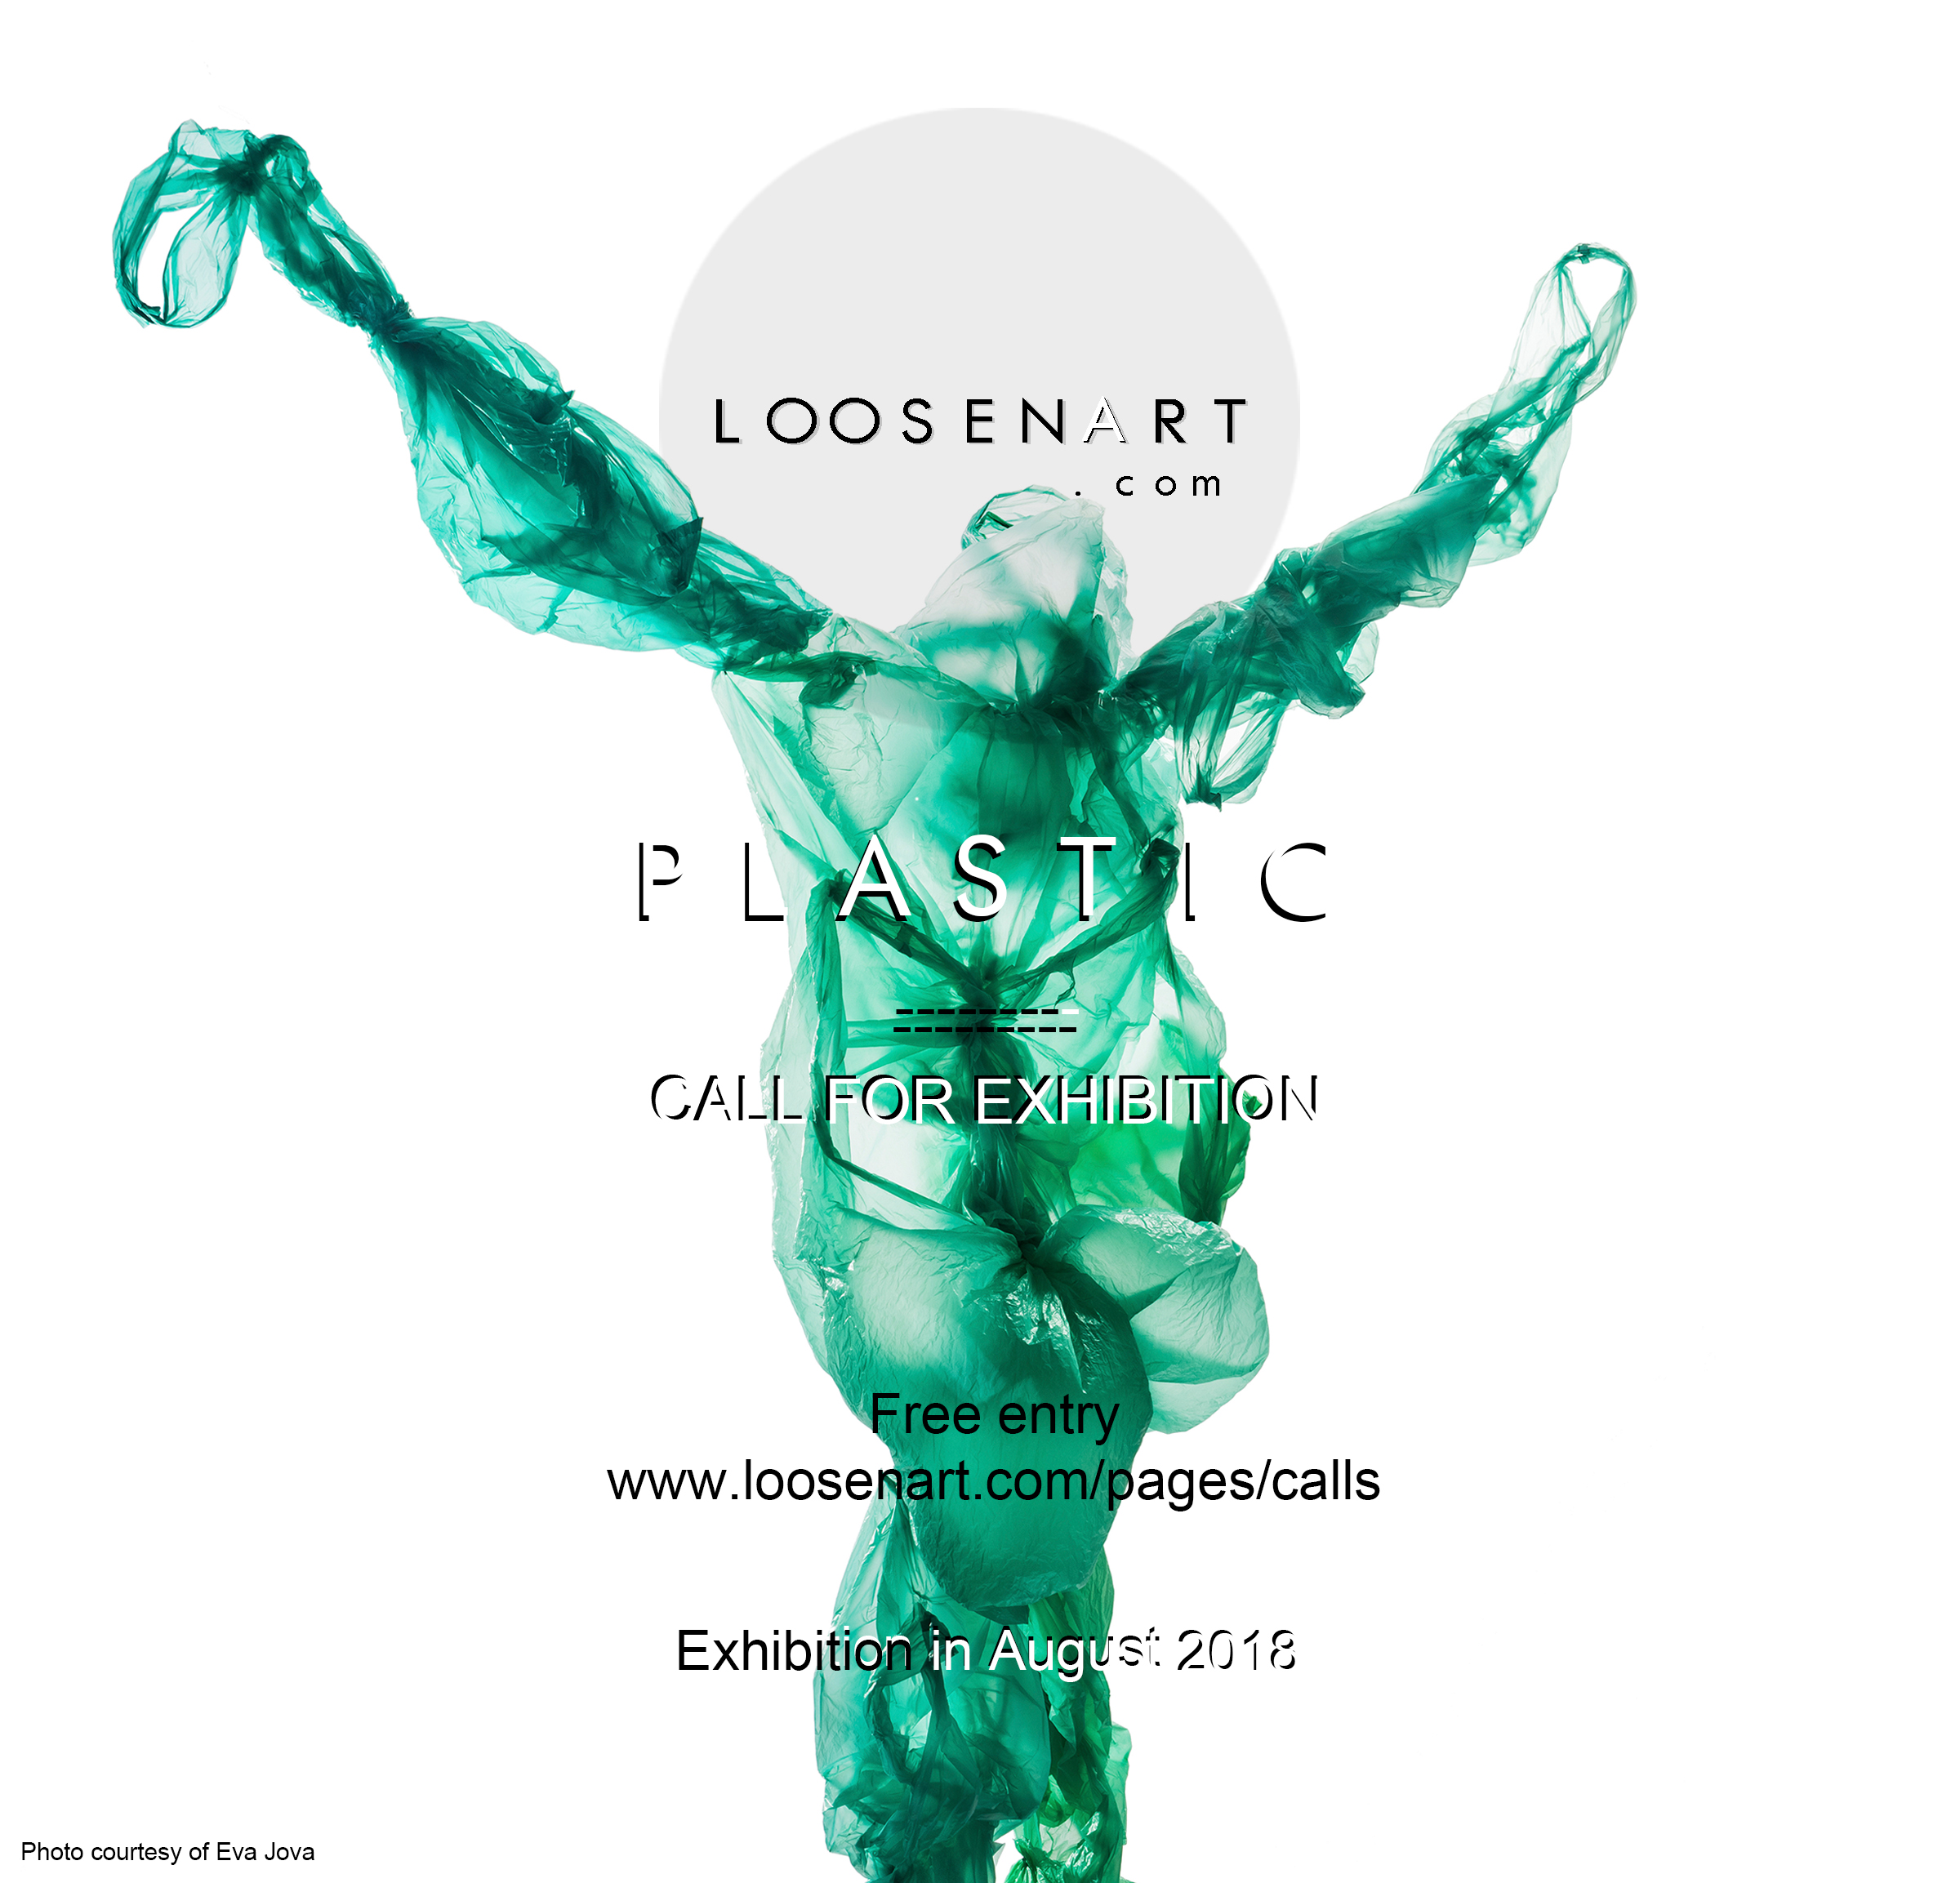 Plastic │ Call for Exhibition